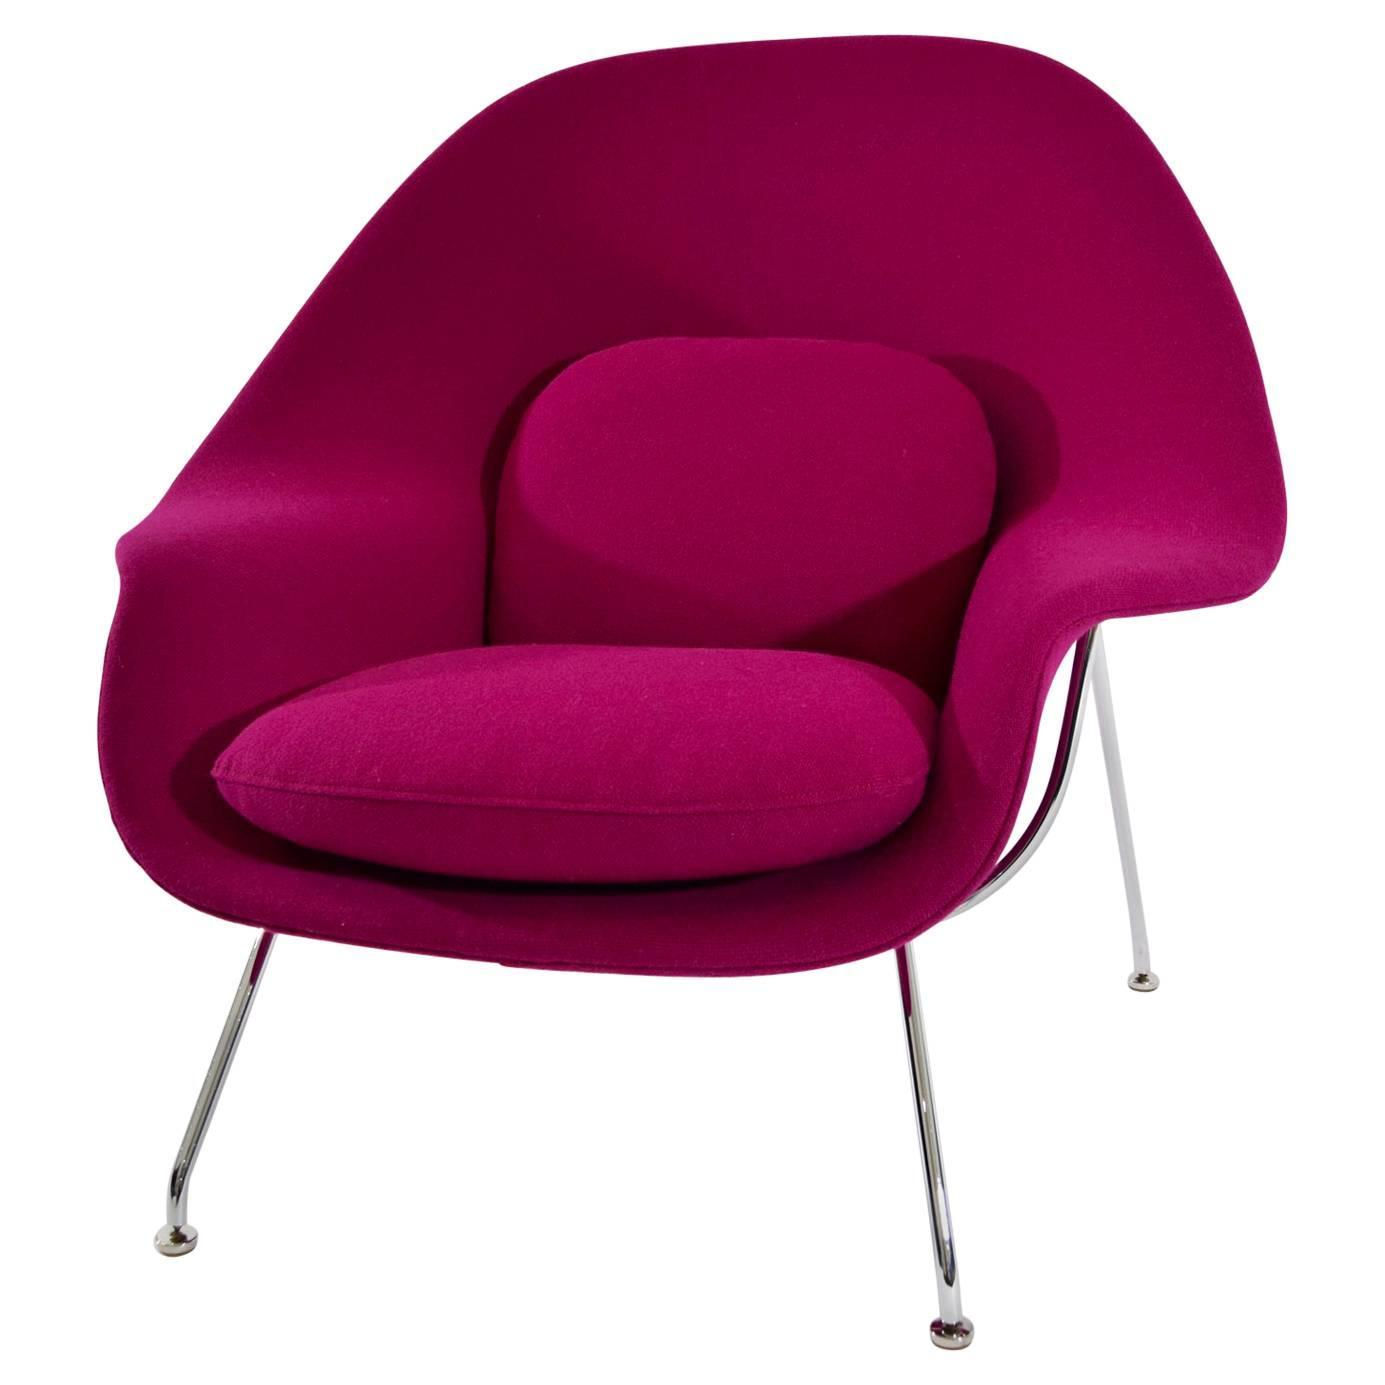 saarinen for knoll womb chair in knoll upholstery for sale at 1stdibs